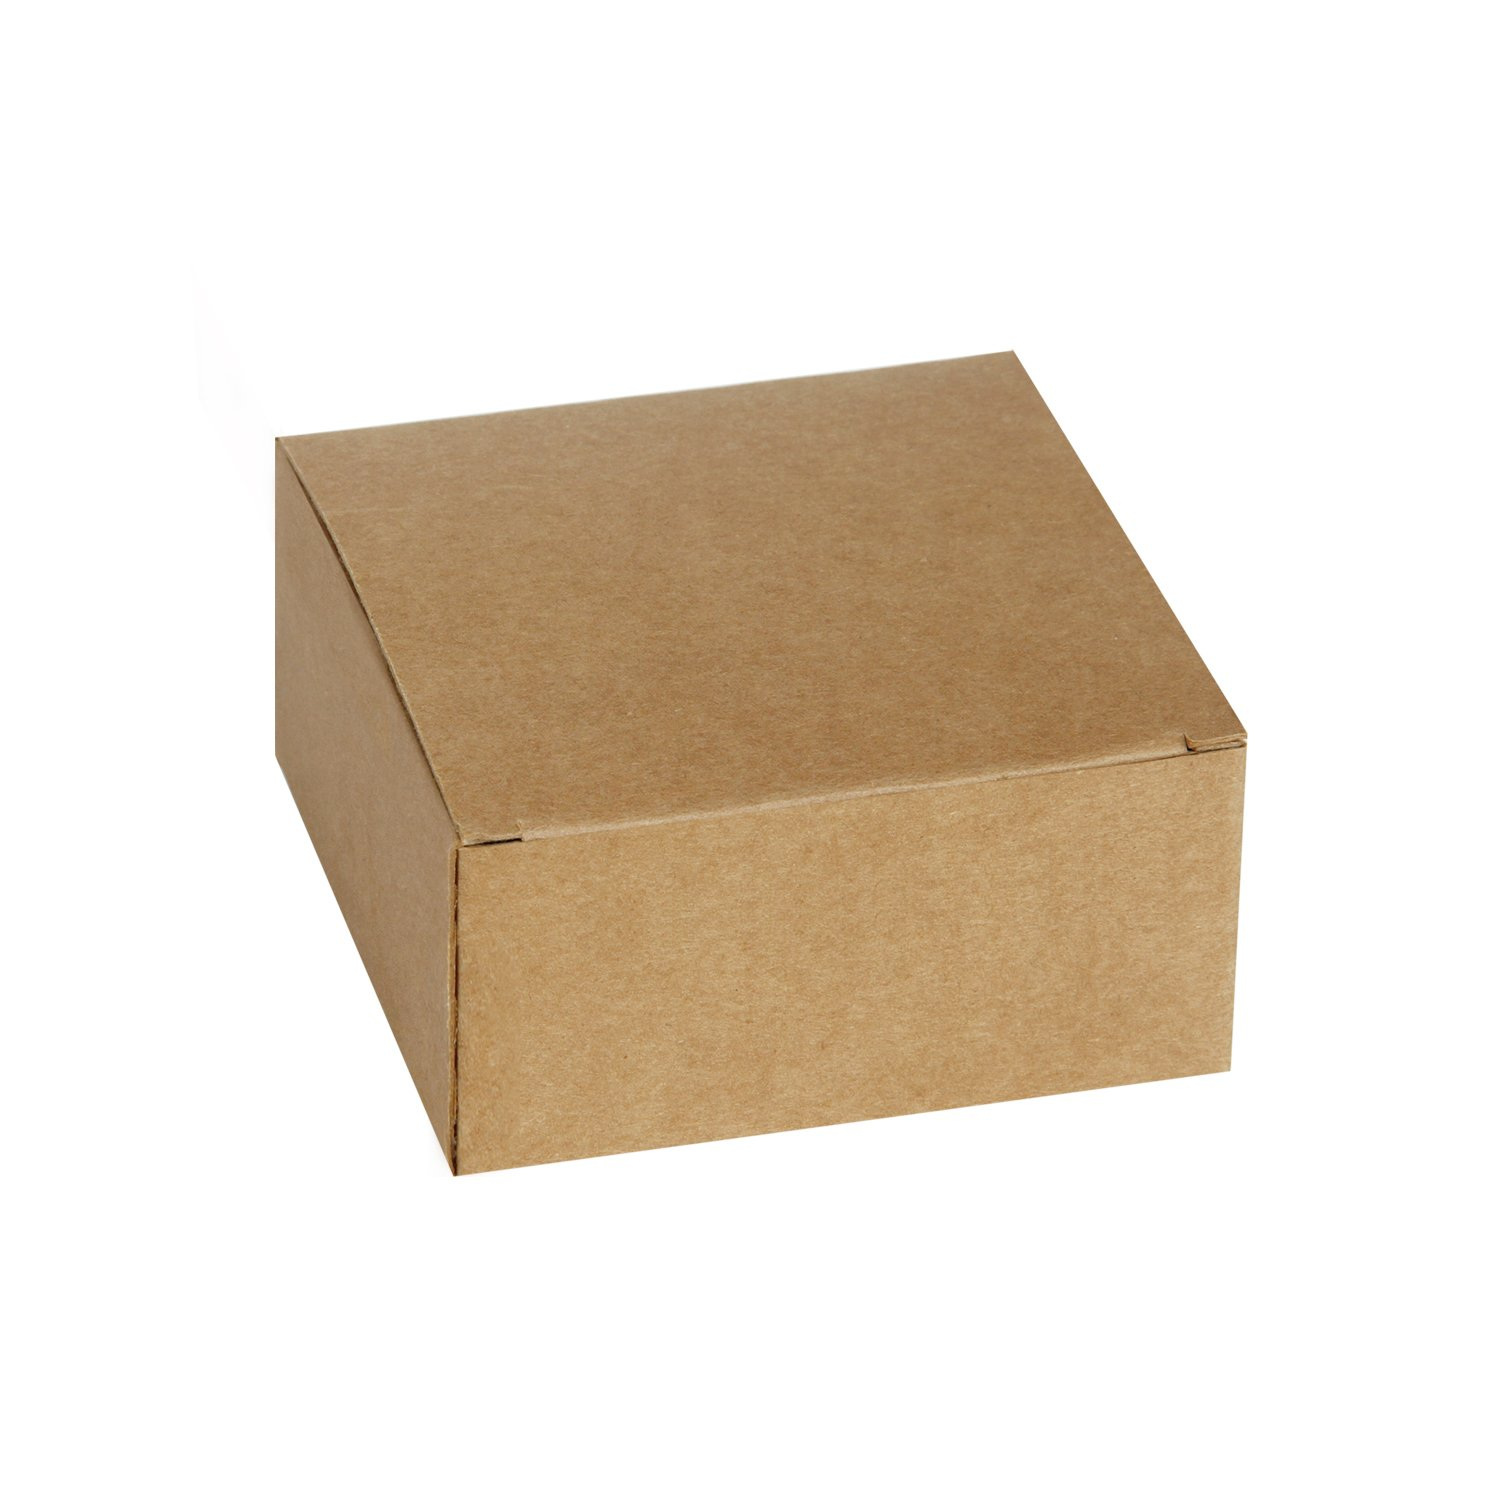 Amazon.com: RUSPEPA Recycled Cardboard Gift Boxes - Small Gift Box with Lids For Bracelets, Jewelry And Small Gifts - 4